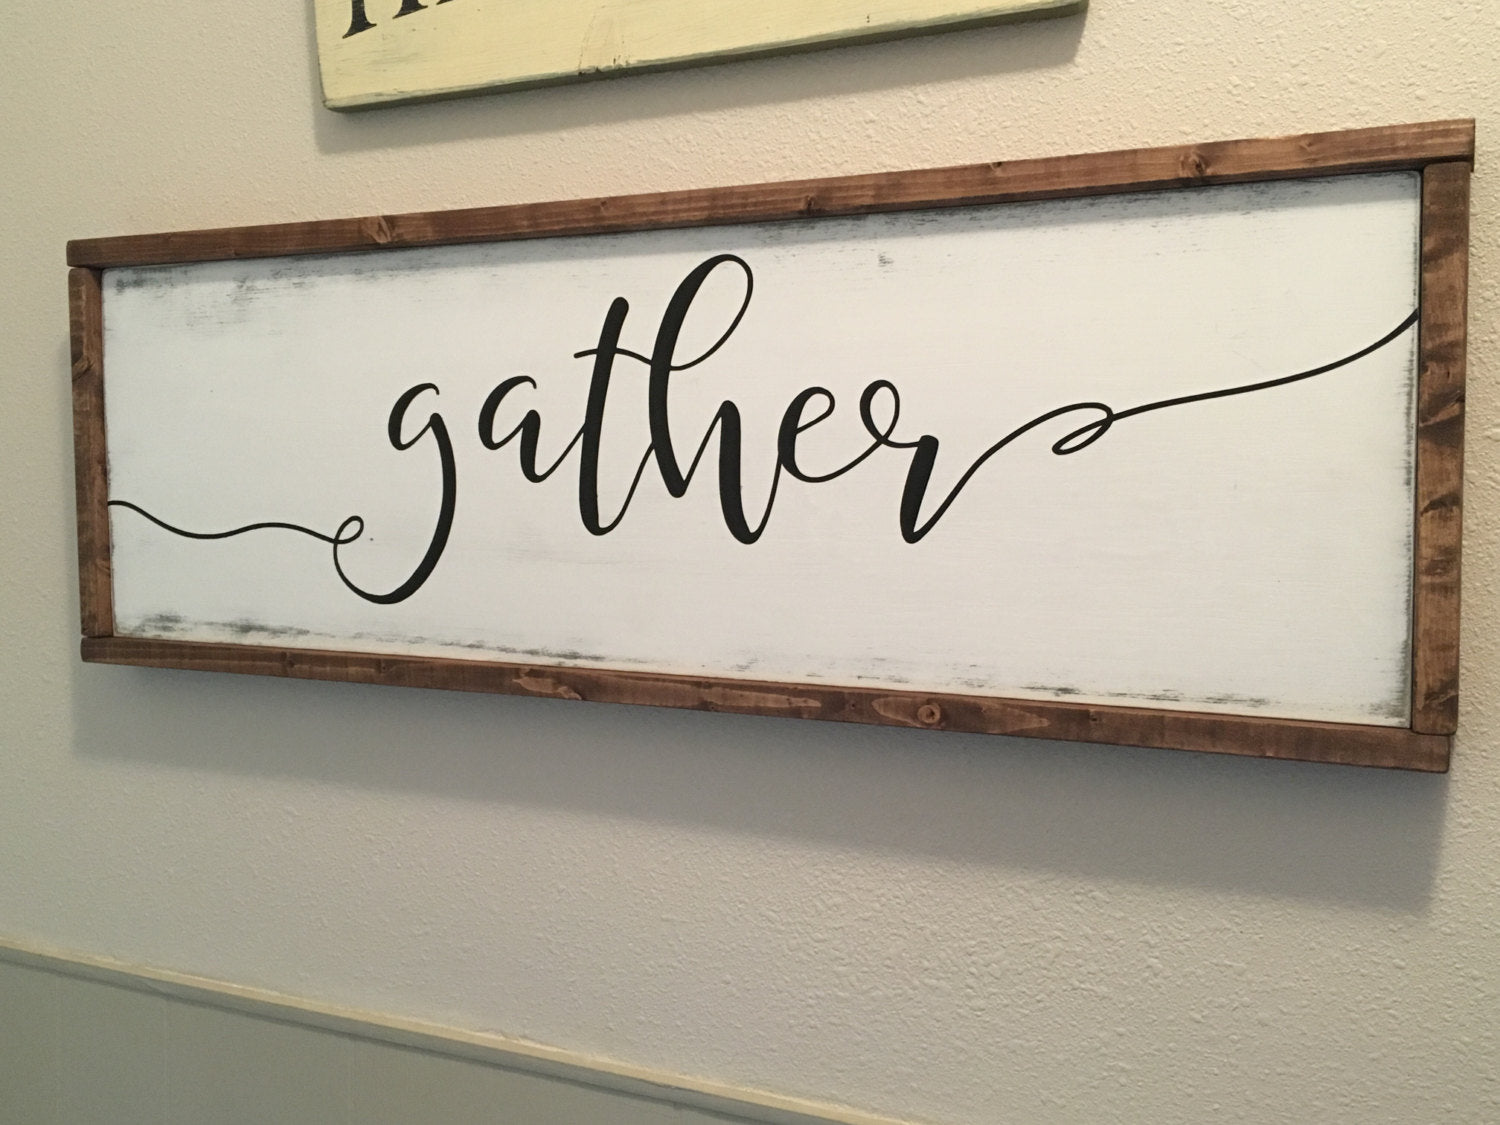 Gather Wood sign Farmhouse Decor Home Decor Rustic Decor Neutral Black/White Wooden Sign